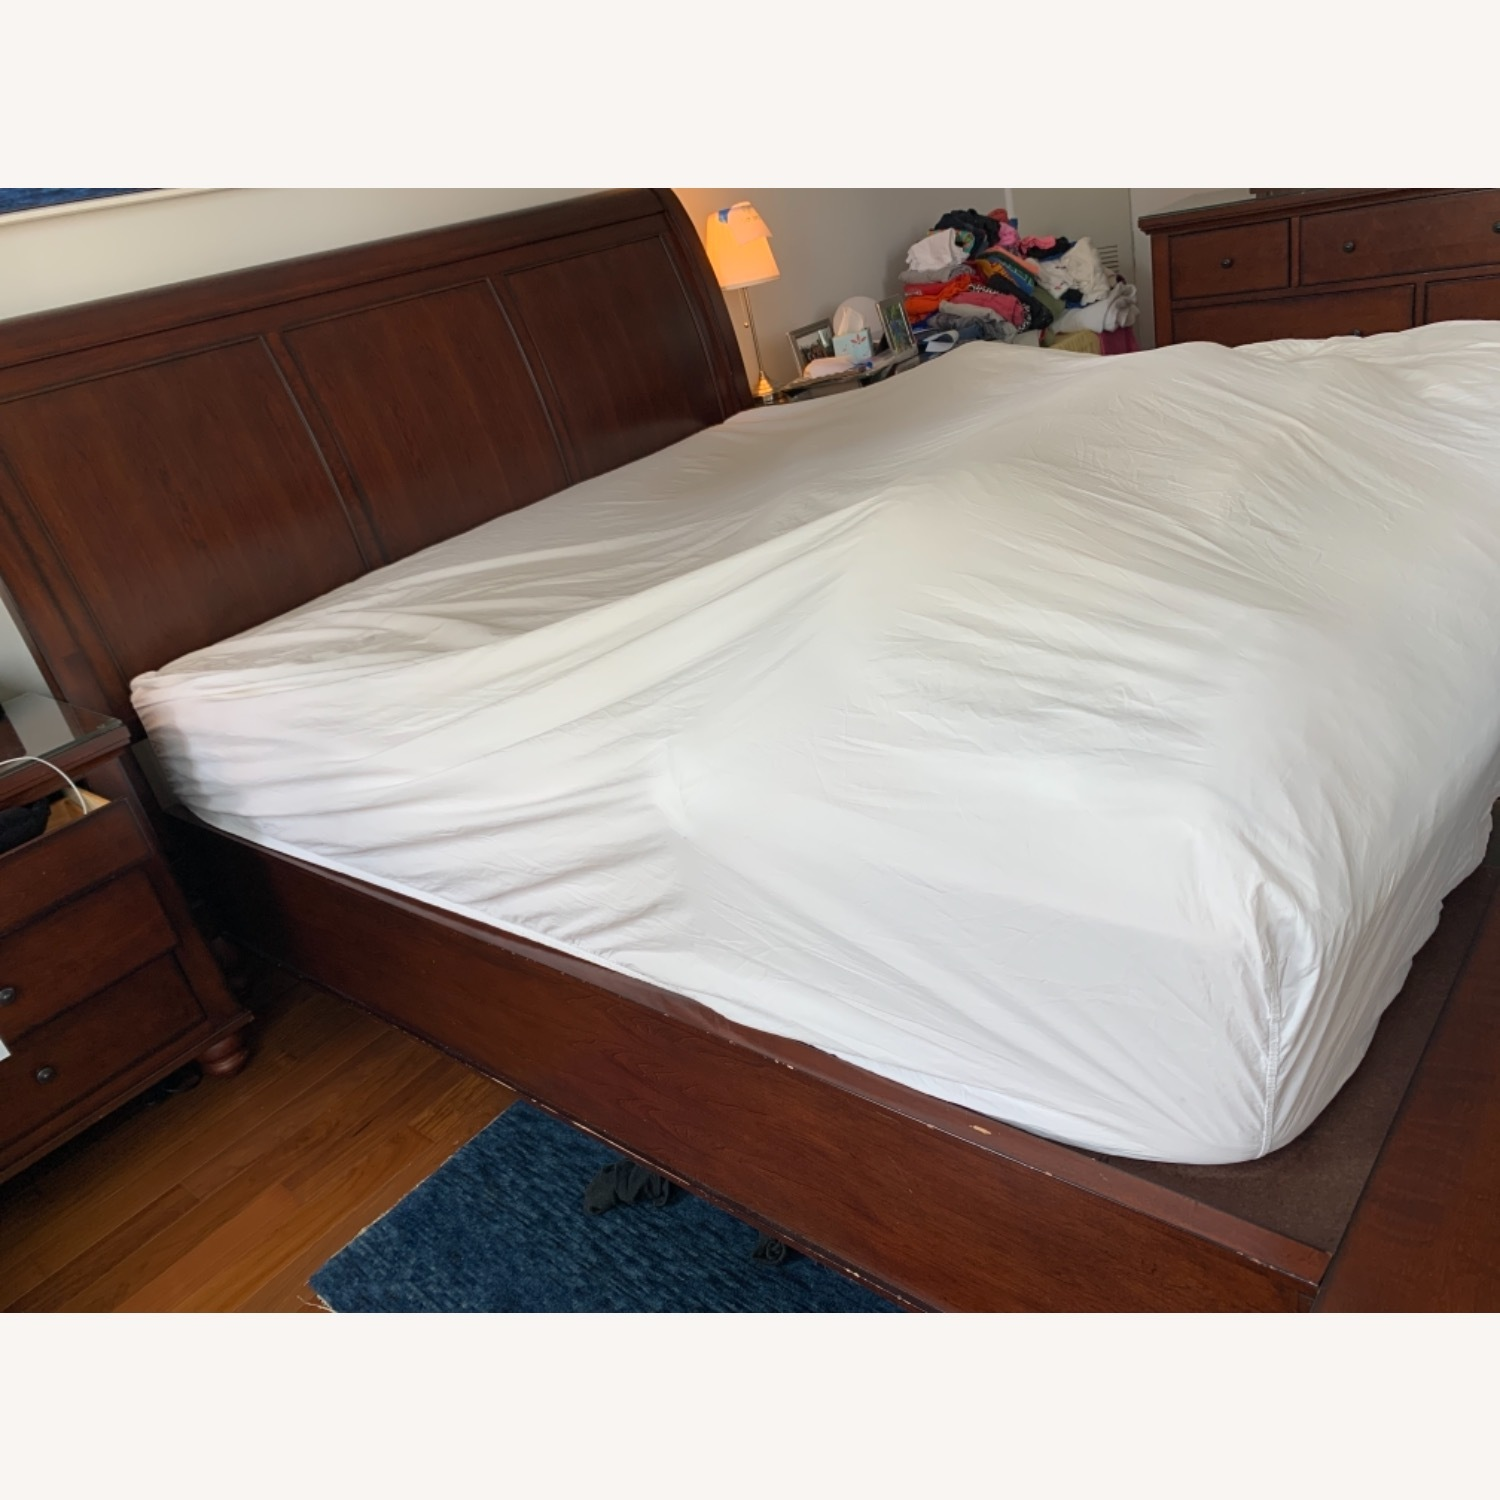 Aspen Home California King Bed Frame with Headboard - image-3